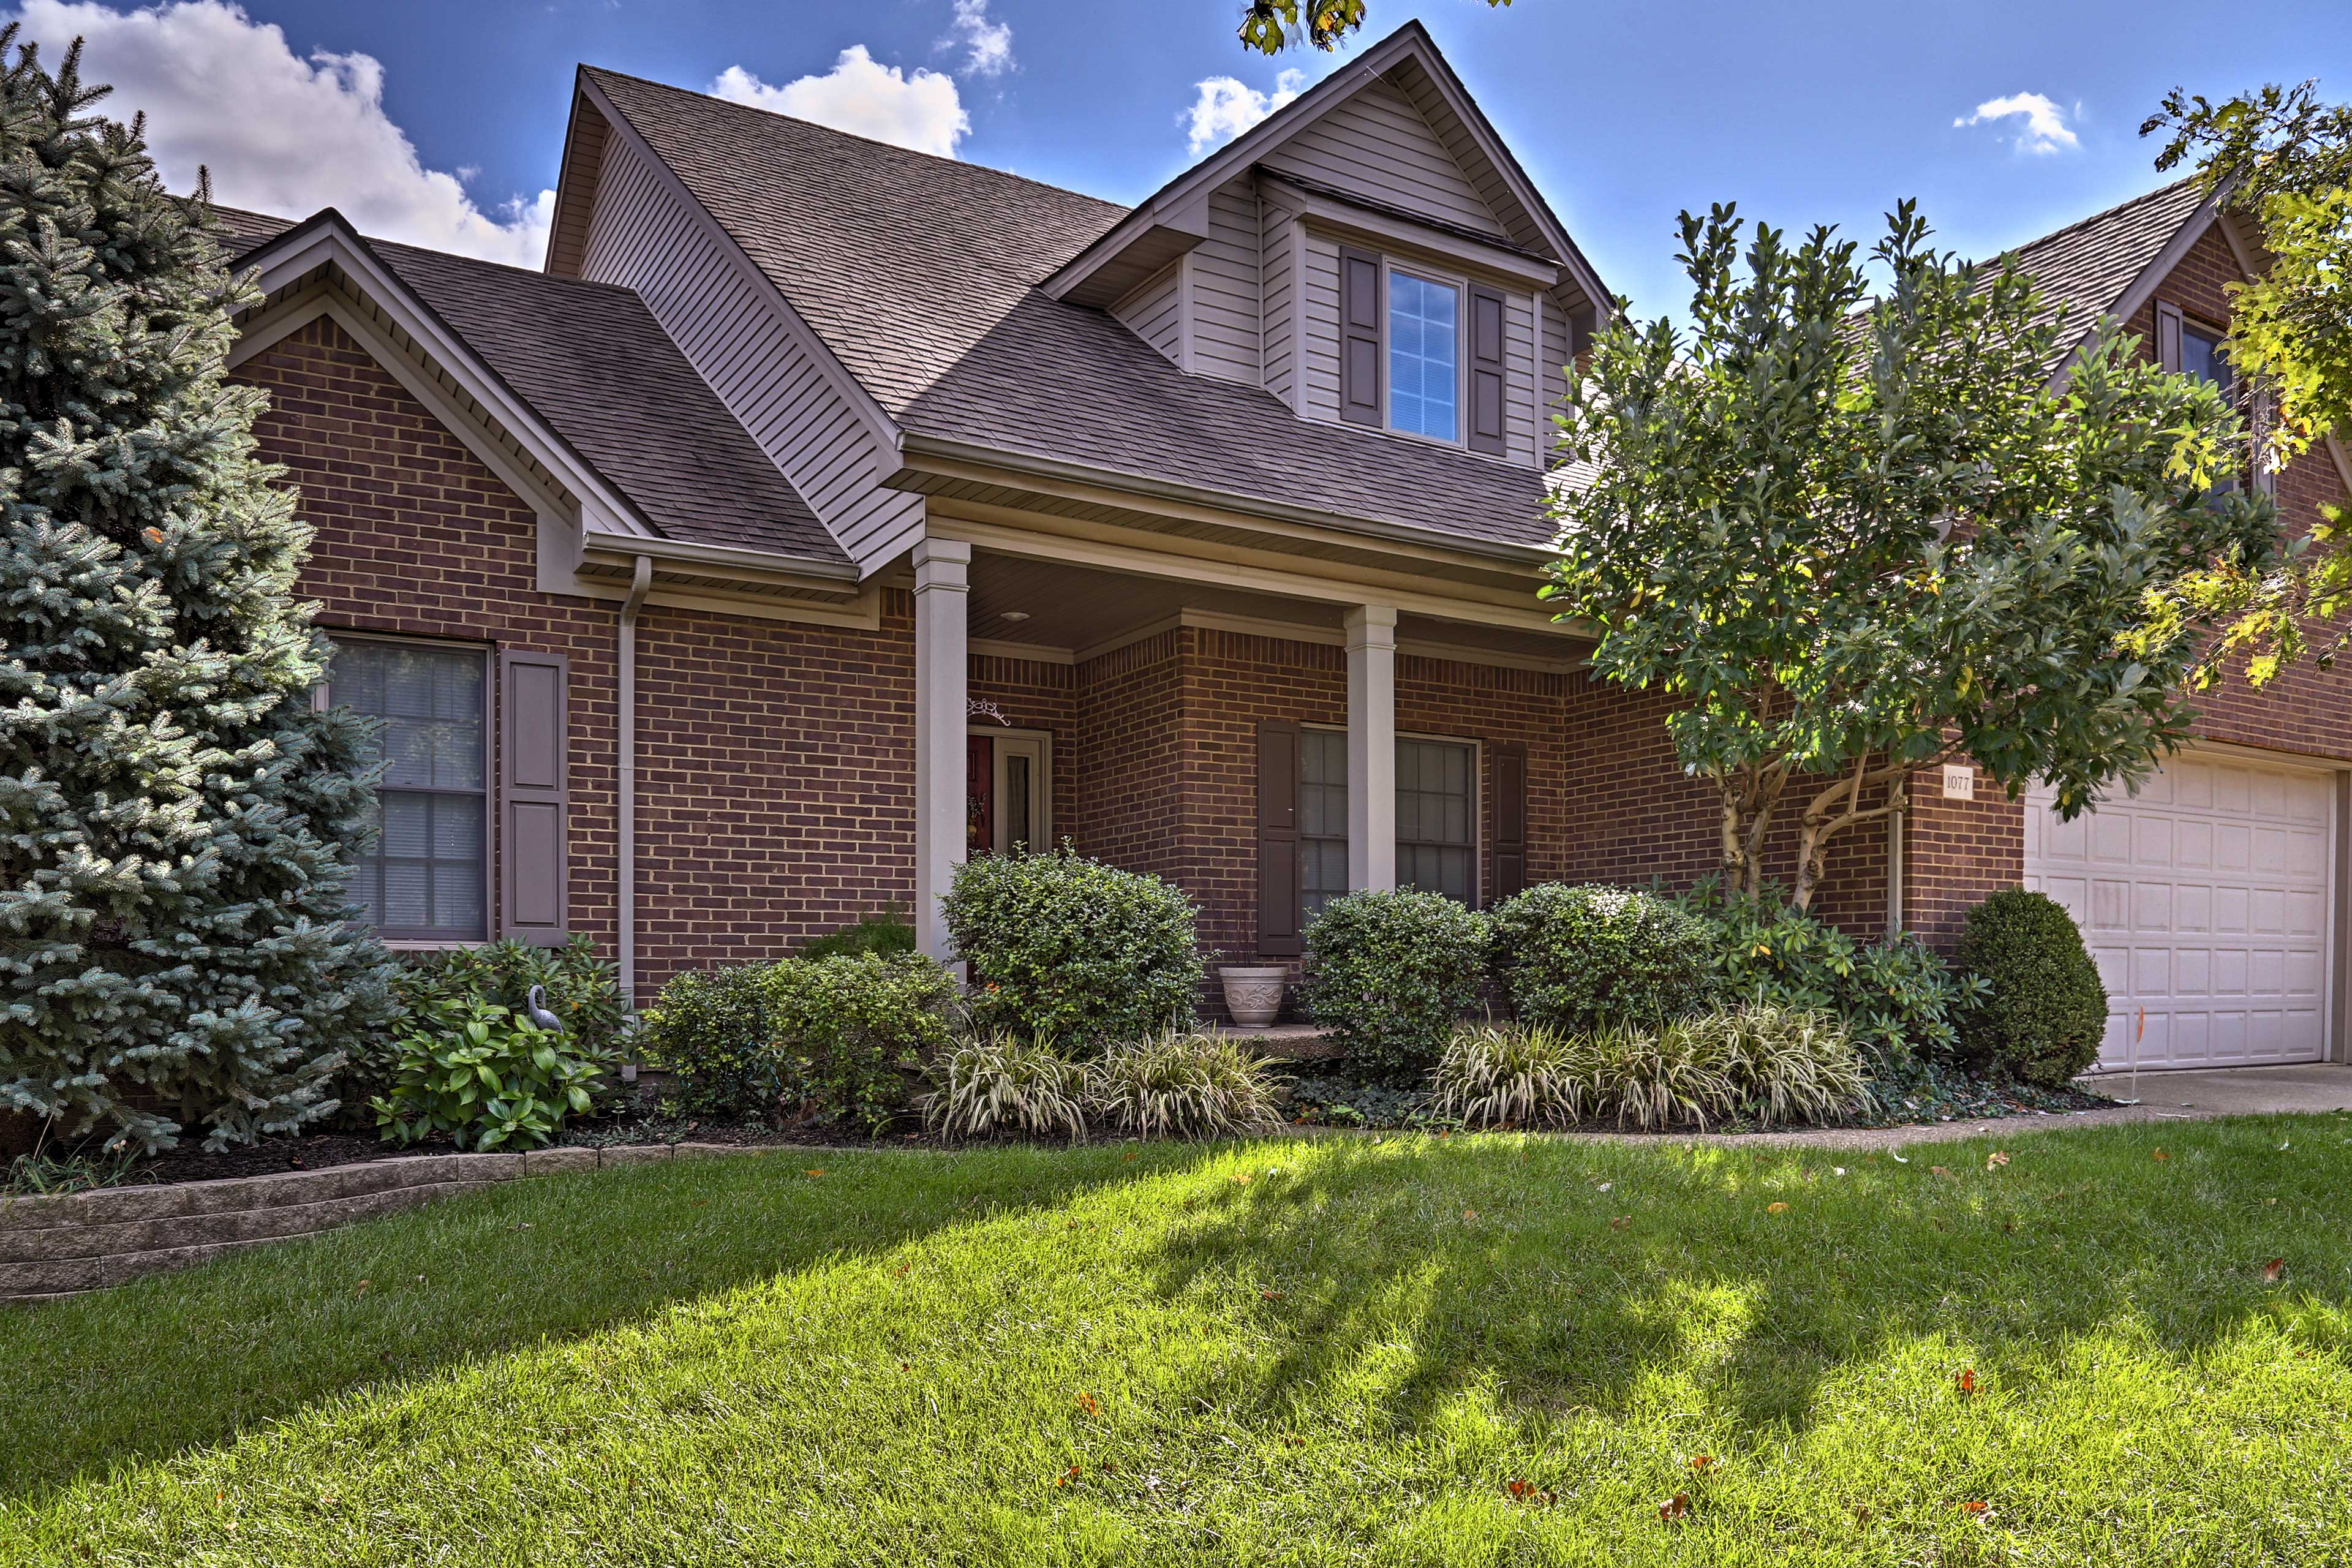 Escape to Lexington by booking this 5-bedroom, 3.5-bathroom vacation rental house!